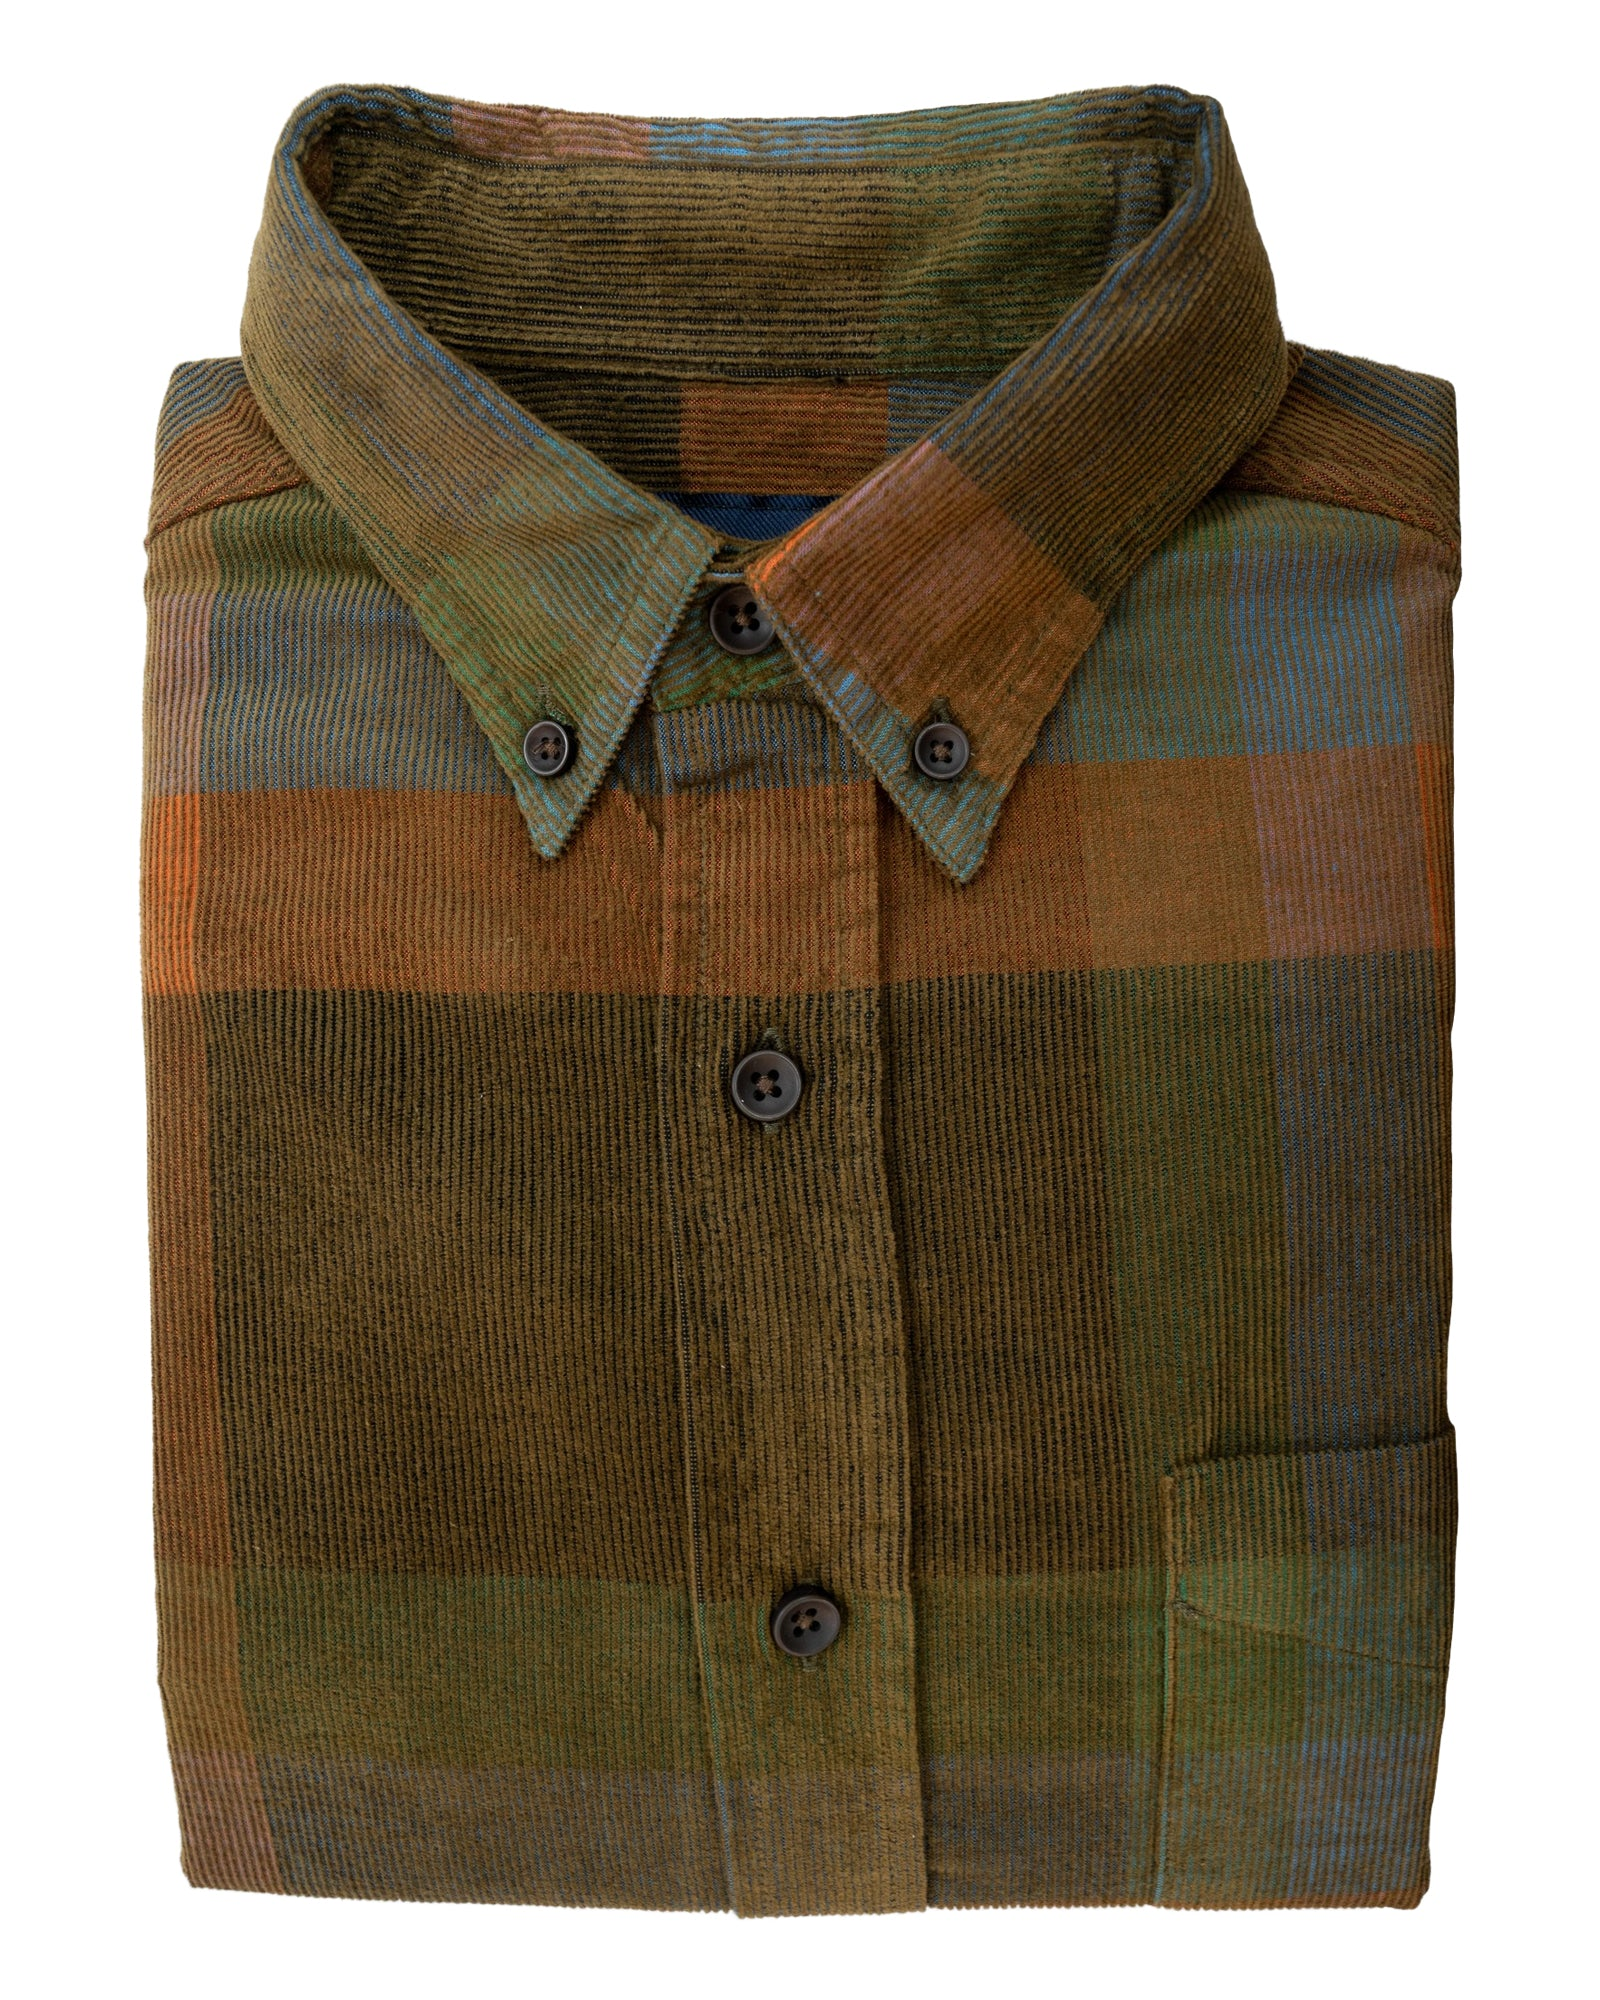 Moss Grid Plaid Button Up Long Sleeve Shirt - Rainwater's Men's Clothing and Tuxedo Rental